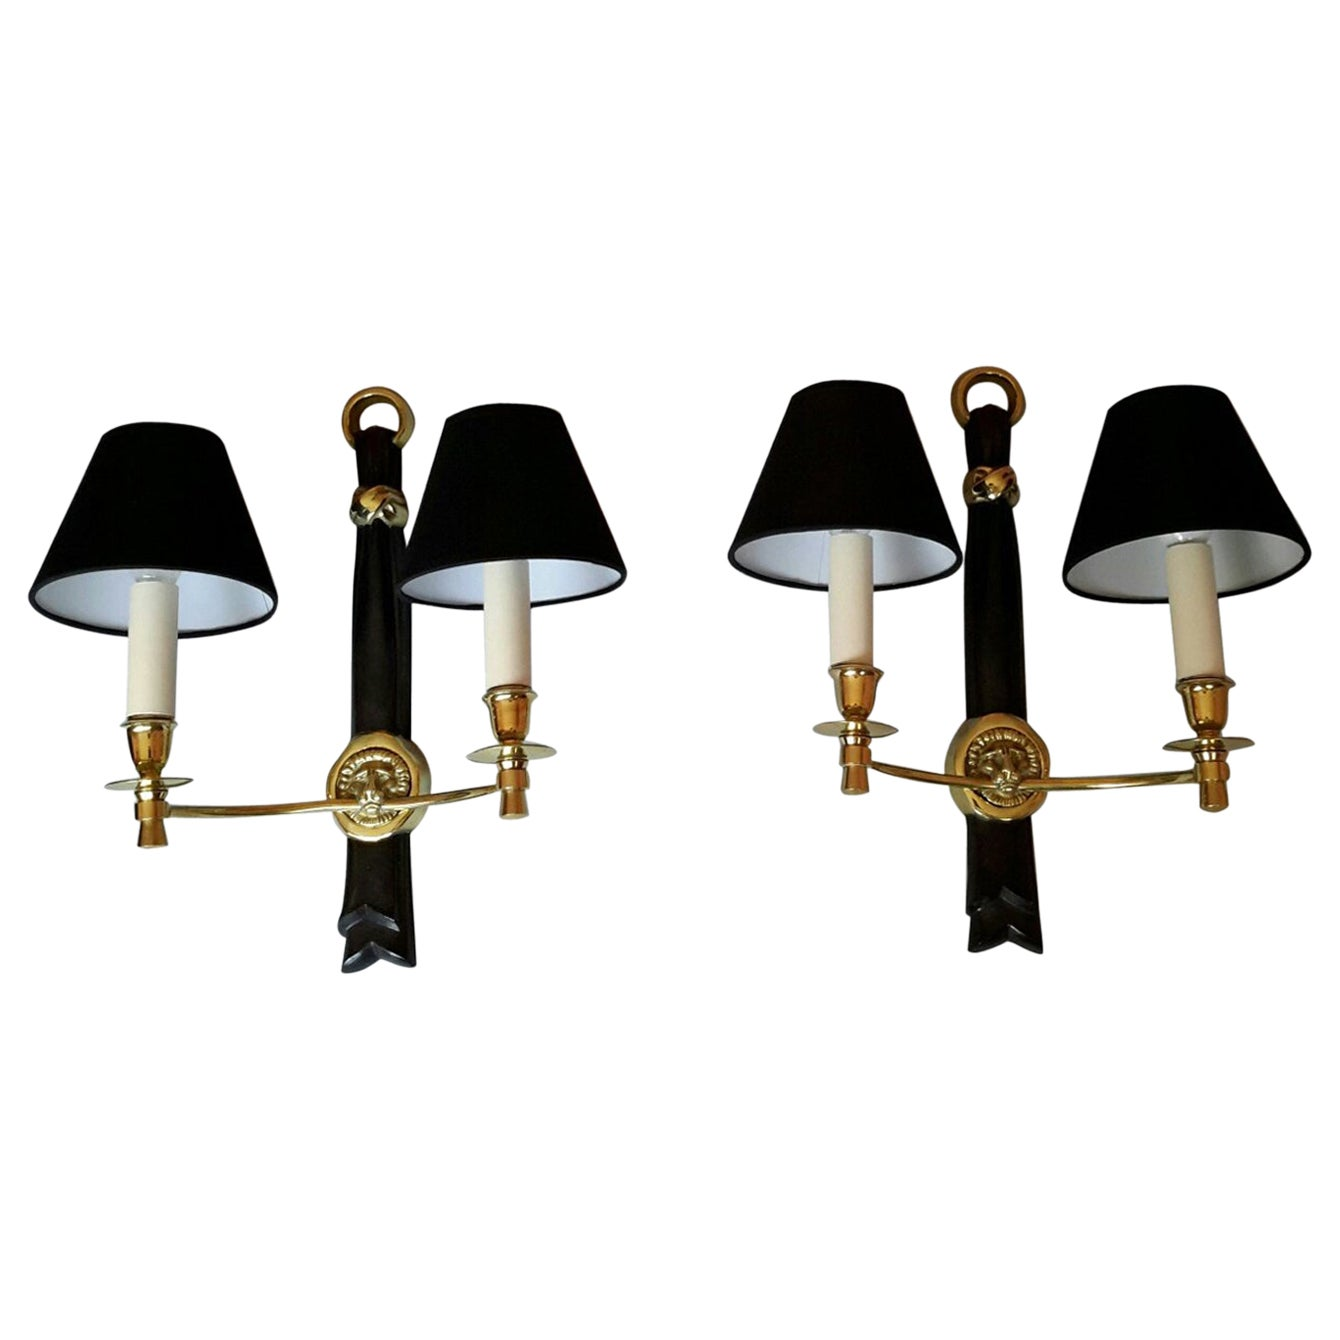 Andre Arbus Neoclassical Sconces, France, 1950